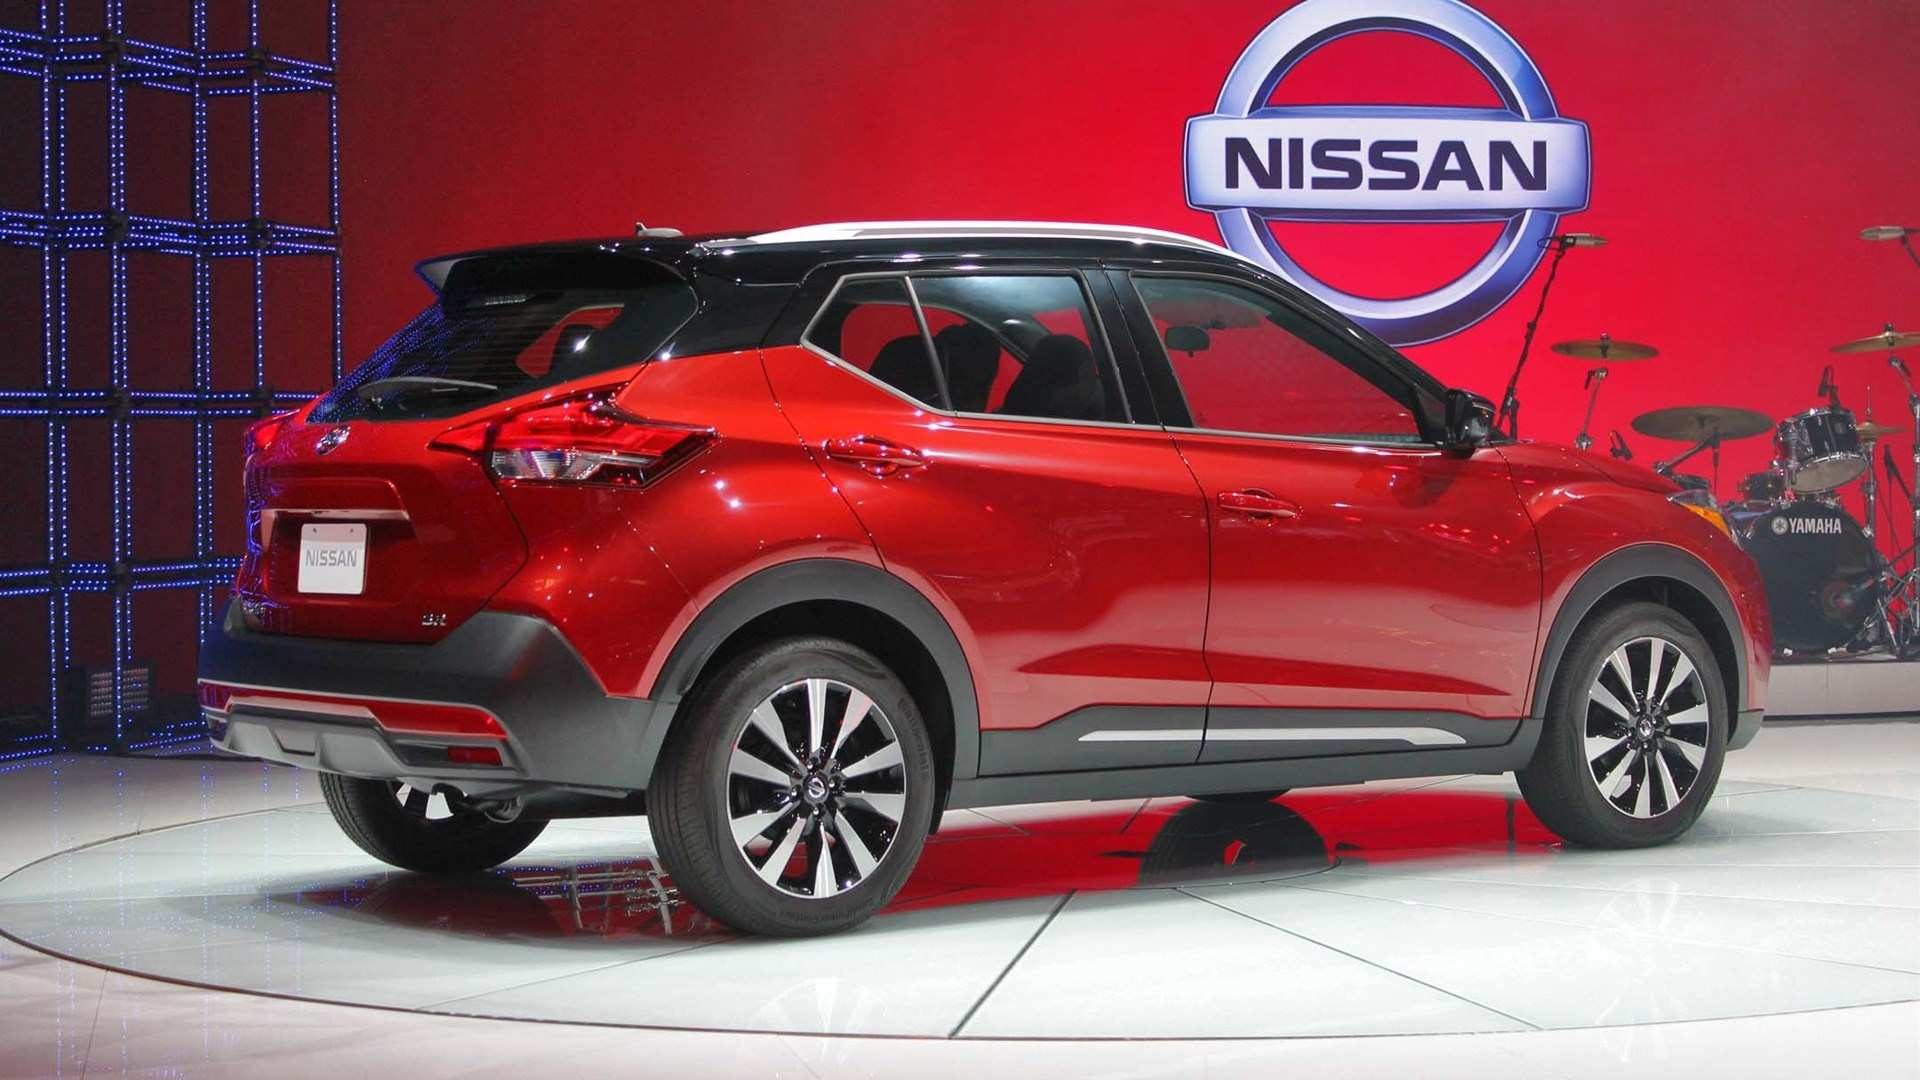 77 Gallery of Nissan Kicks 2020 Pictures for Nissan Kicks 2020